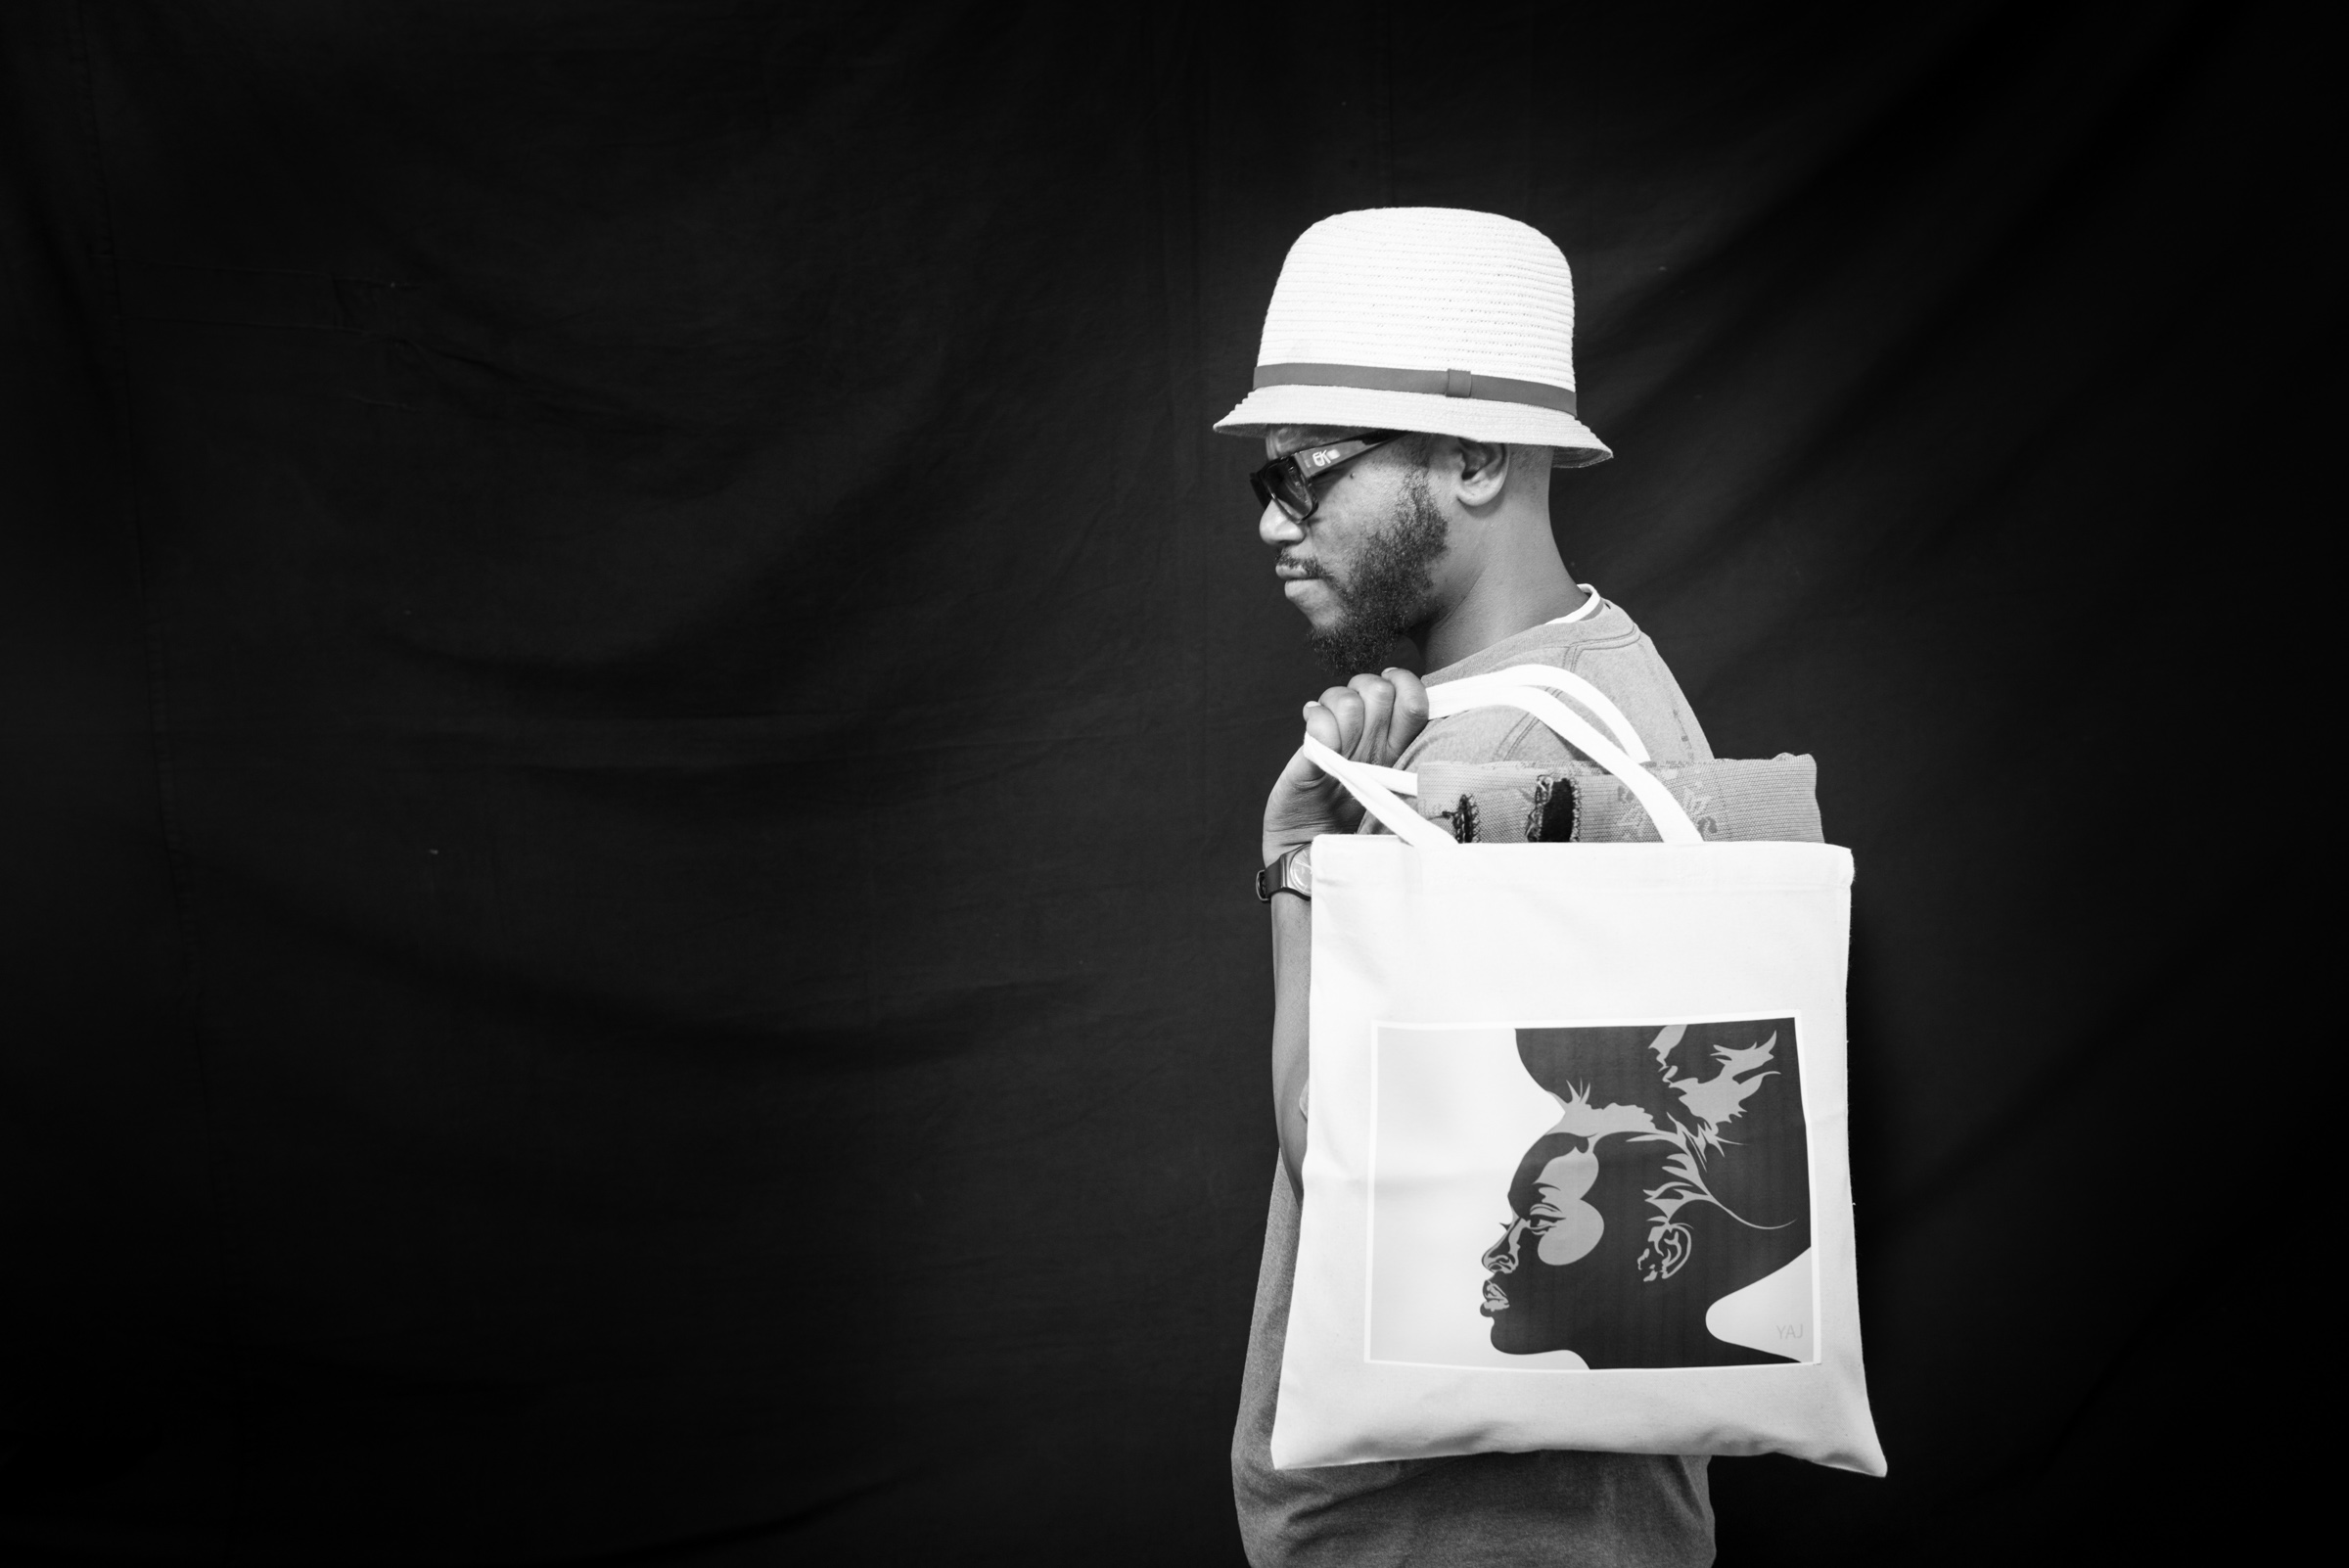 Man with Canvas Bag photographed on black background